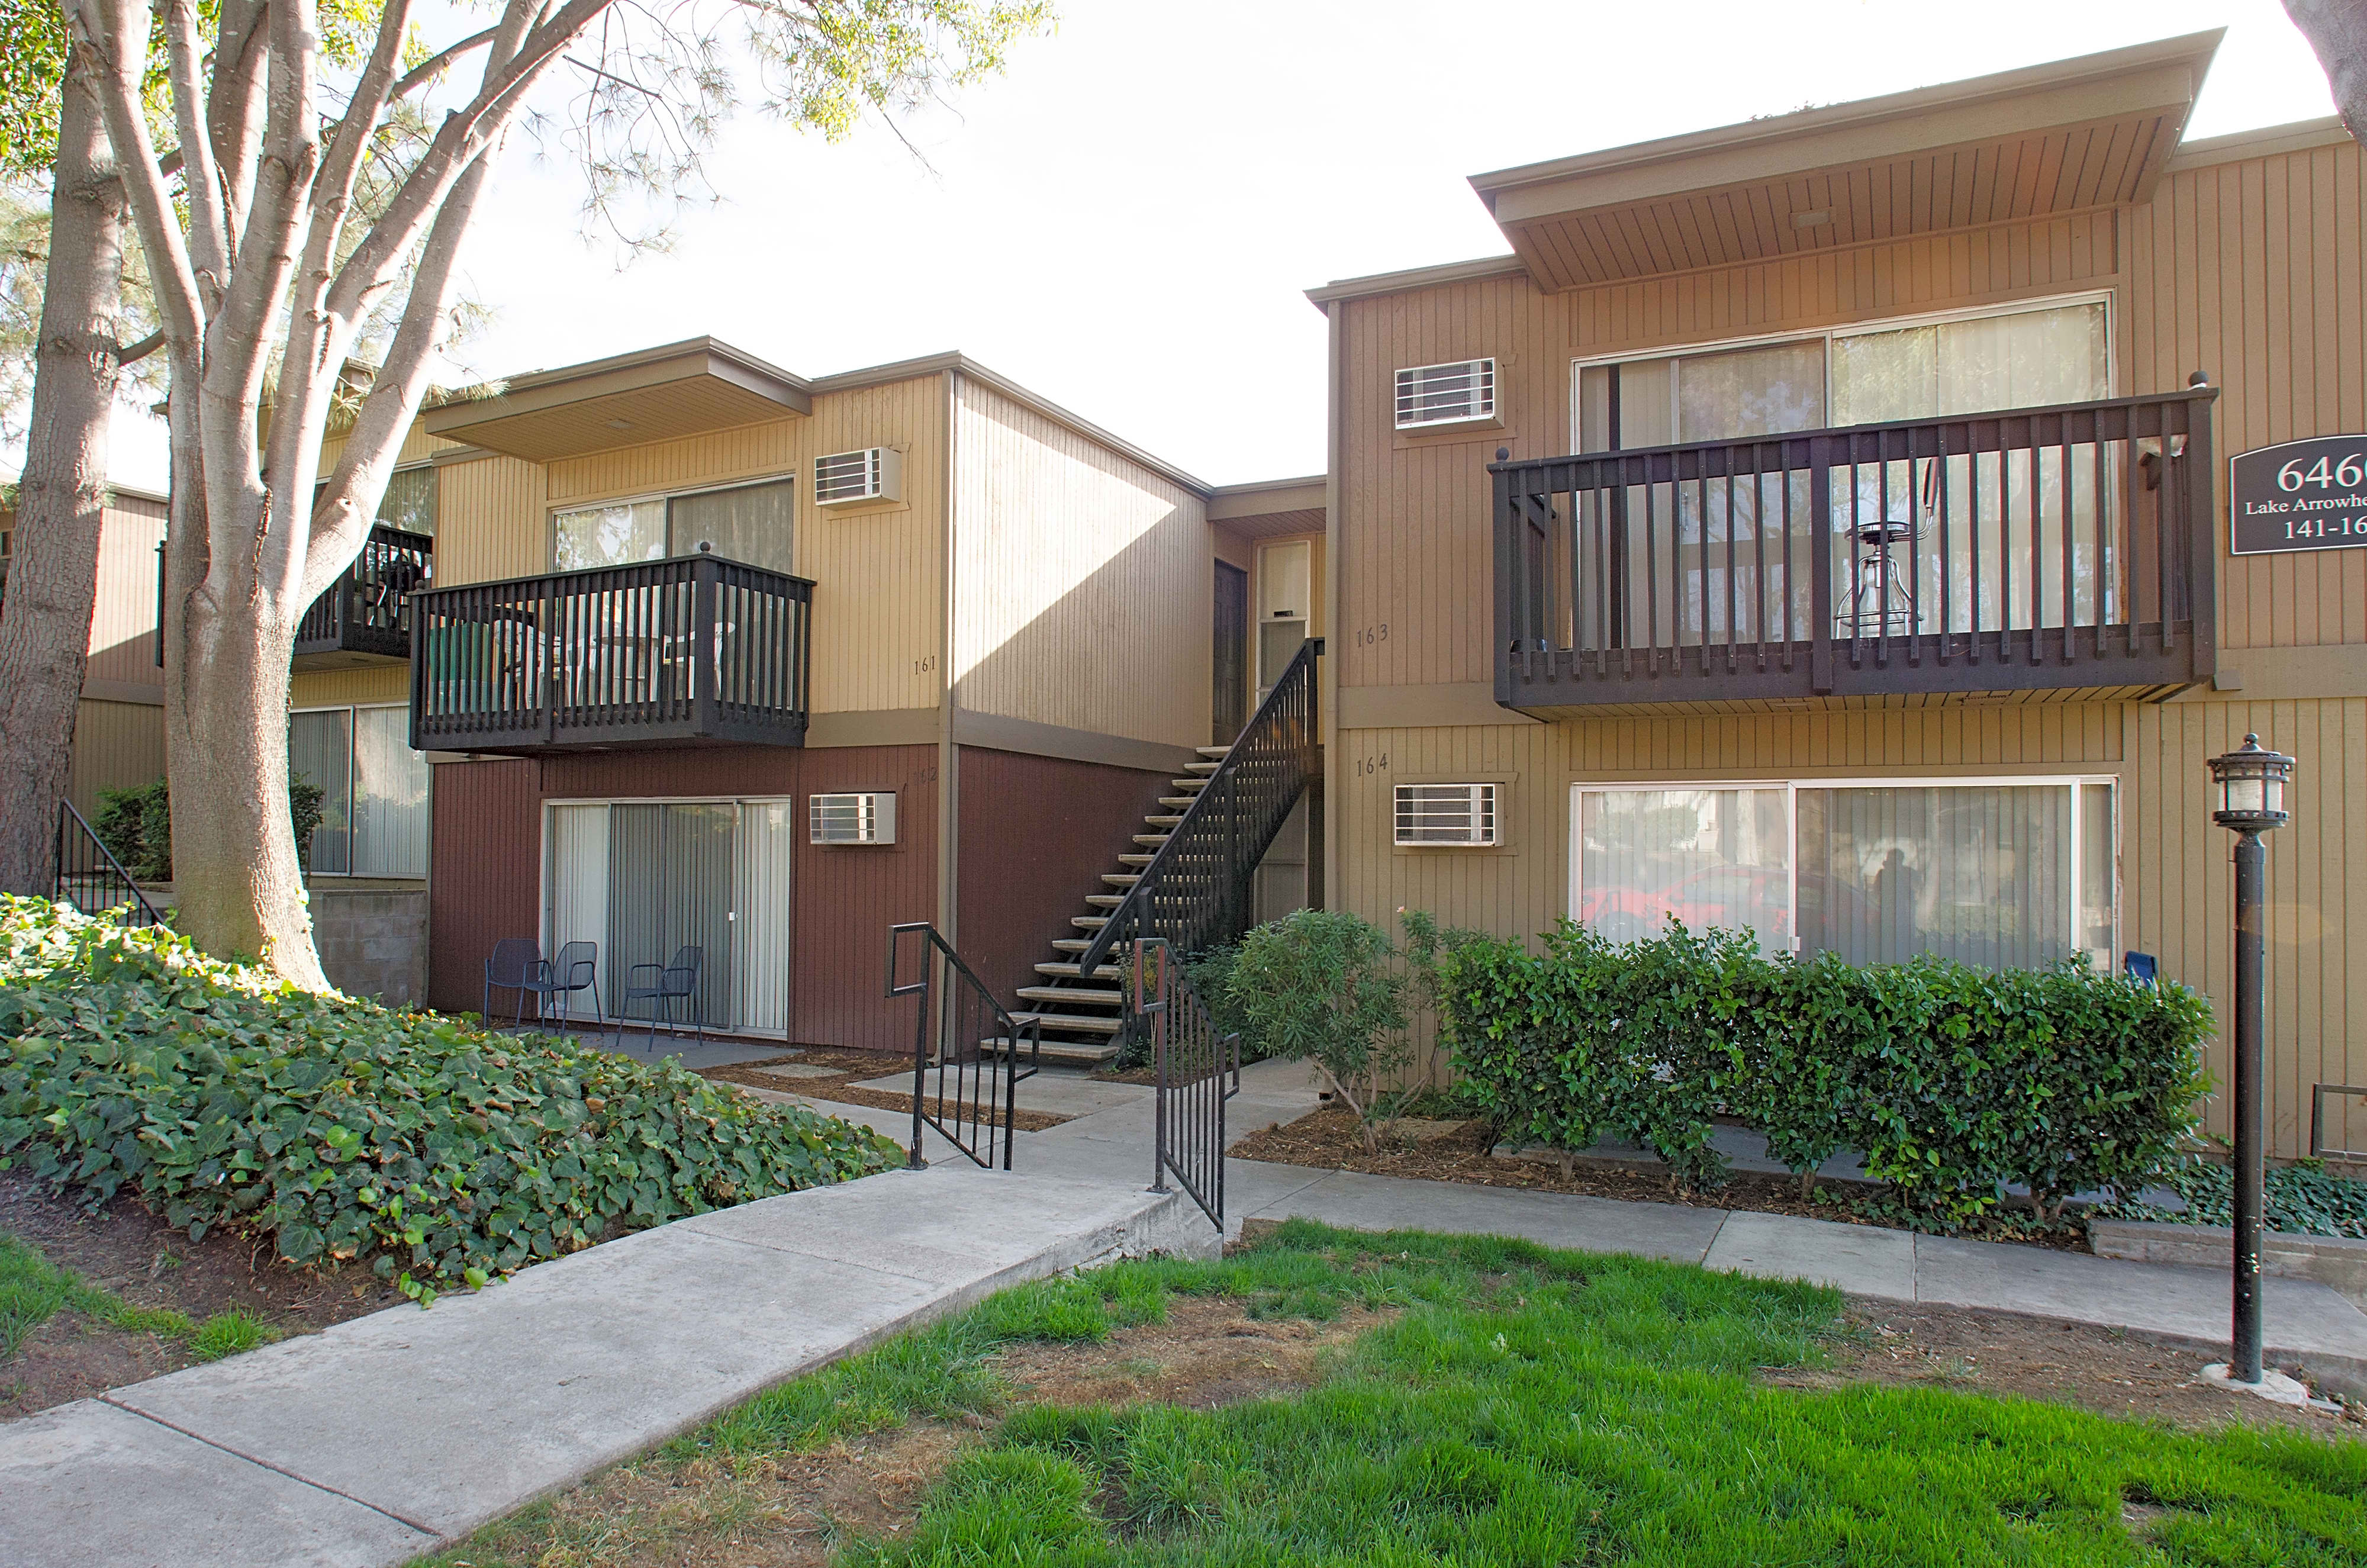 Photo: San Diego Apartment for Rent - $1493.00 / month; 2 Bd & 2 Ba